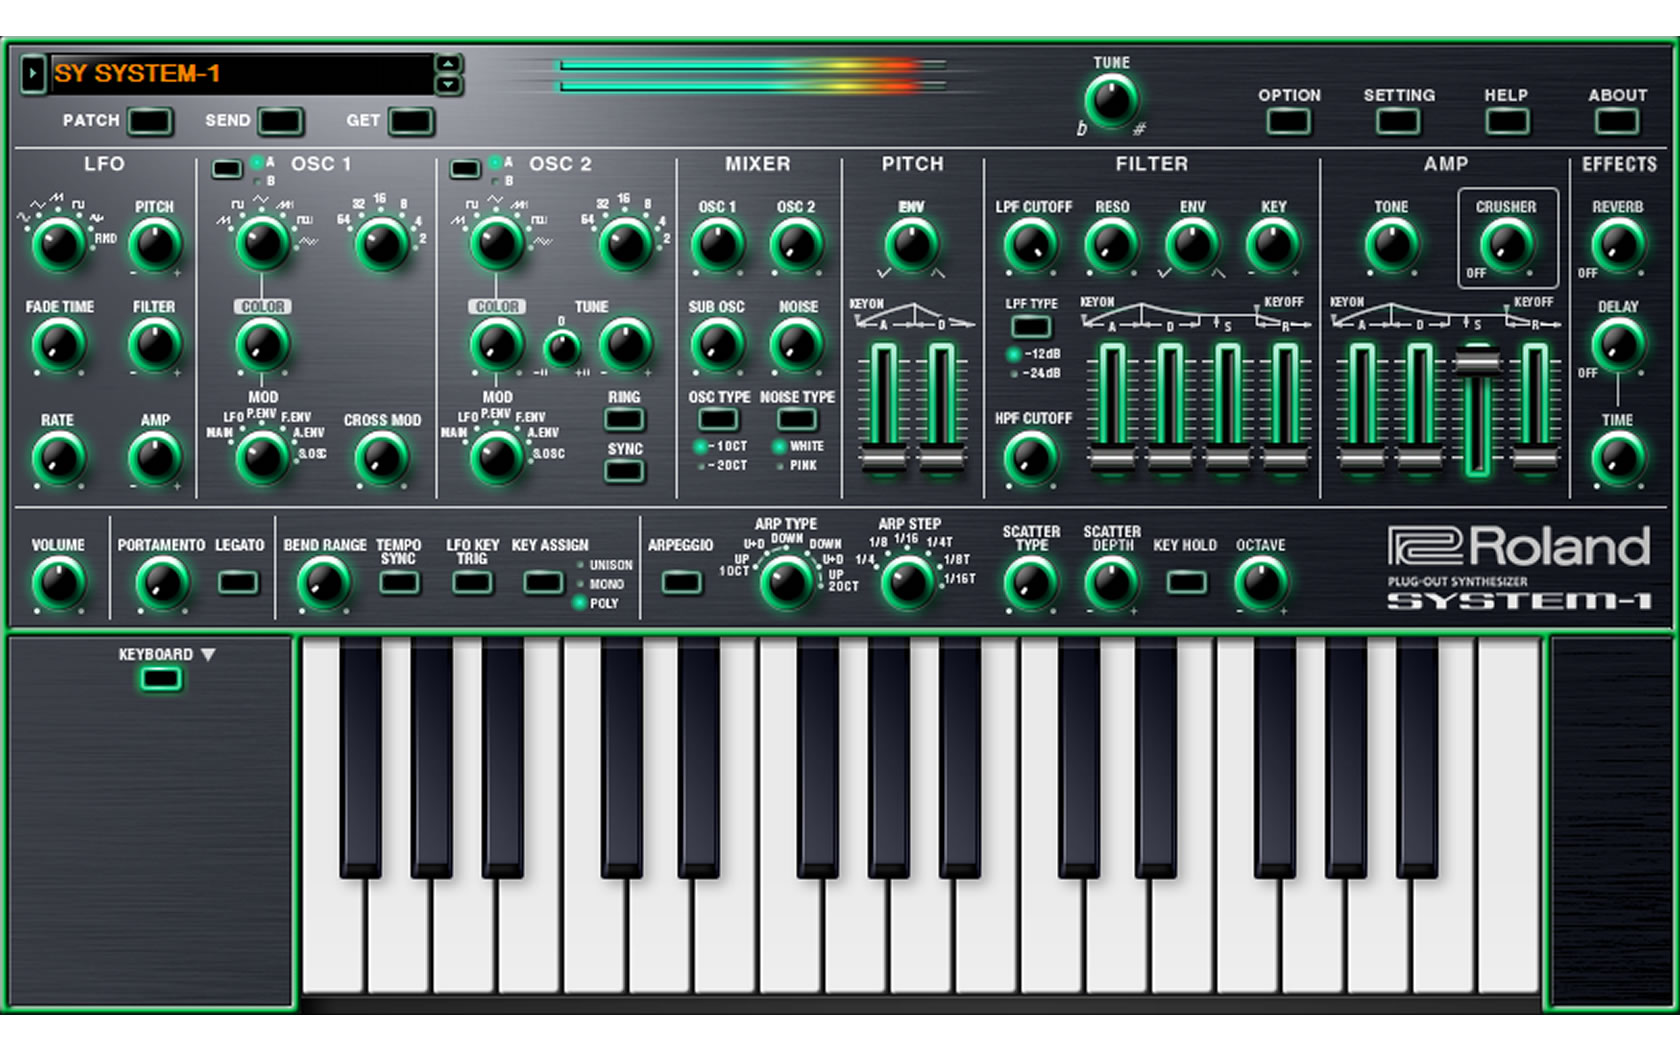 Roland bringt den SYSTEM-1 als Software Synthesizer